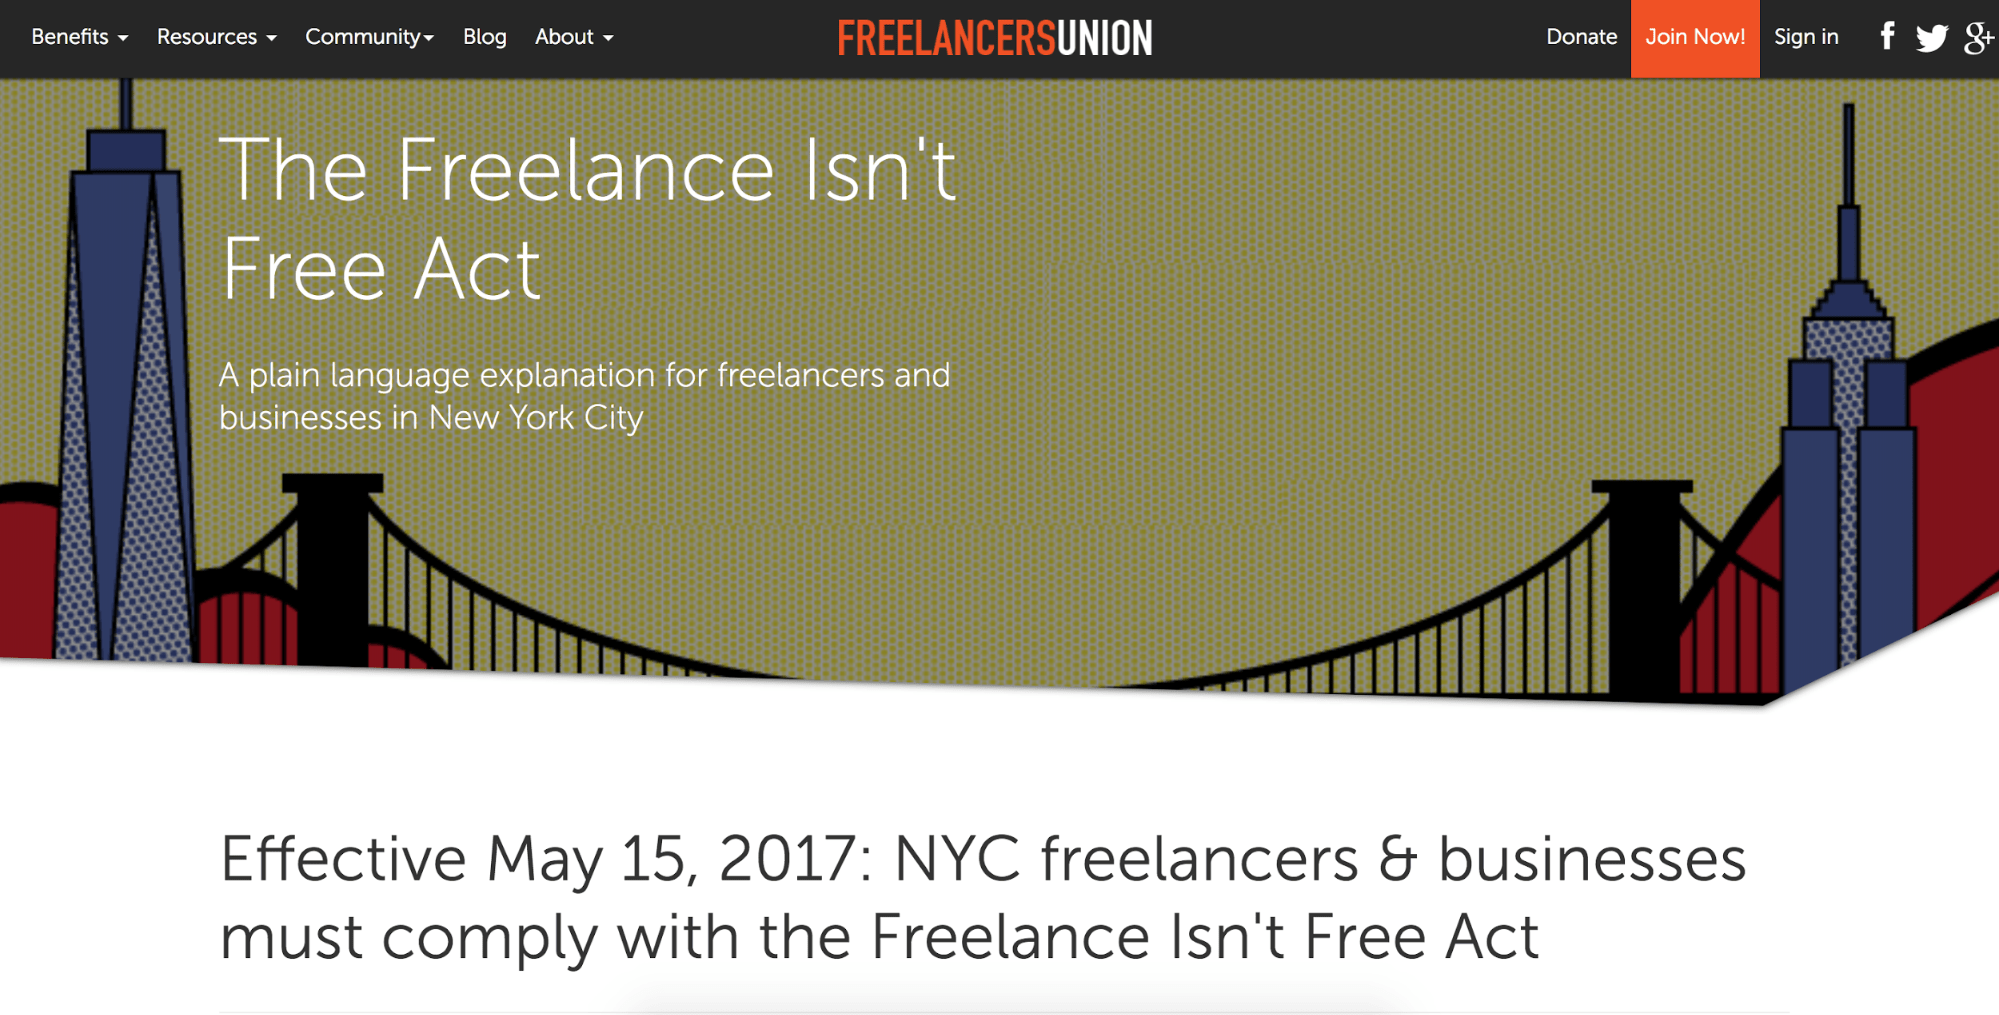 Freelance design contract mistakes